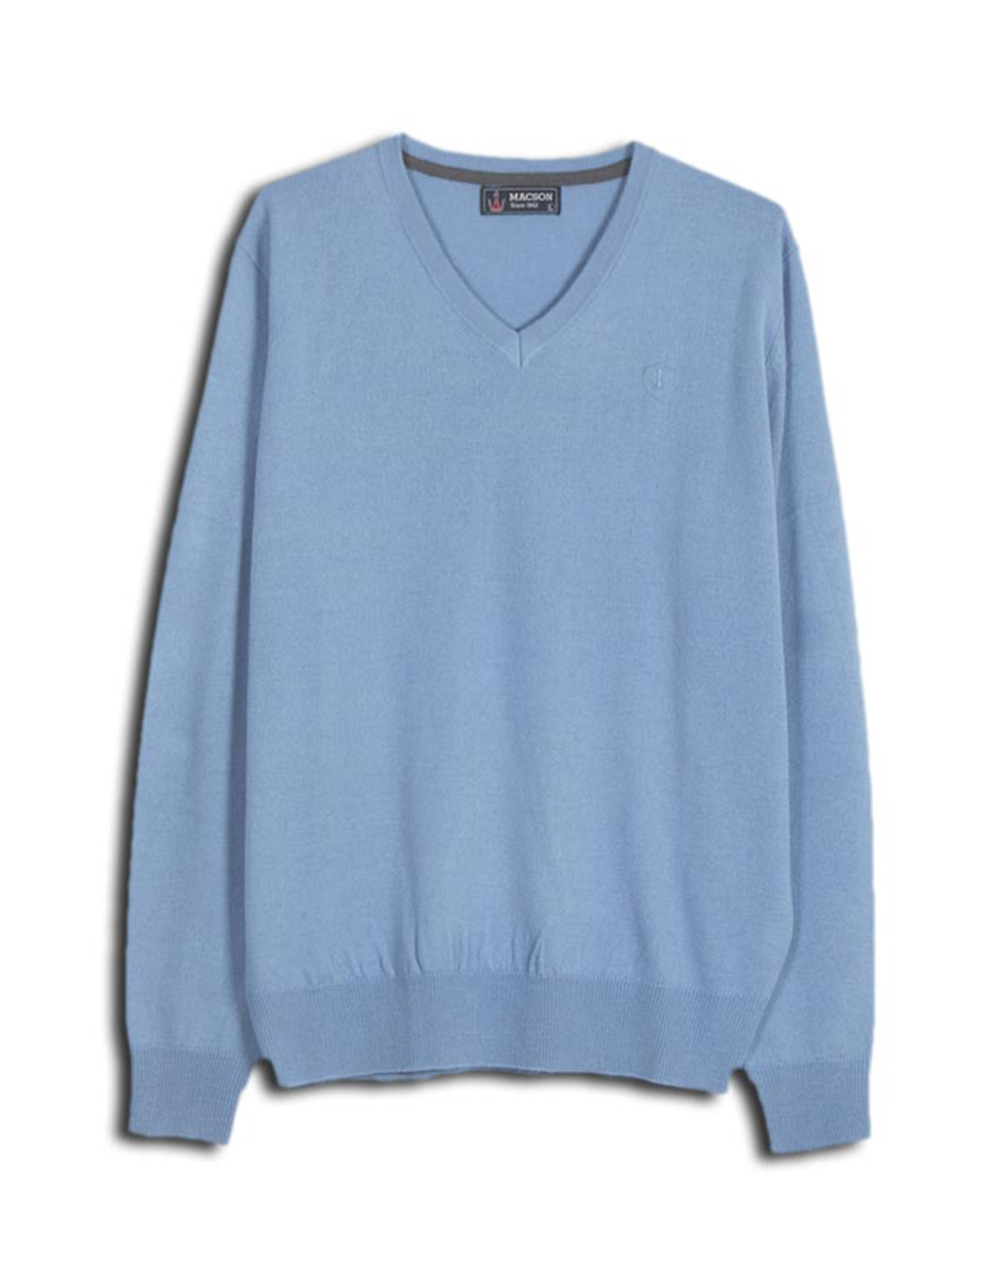 Sky blue v-neck sweater - Backside